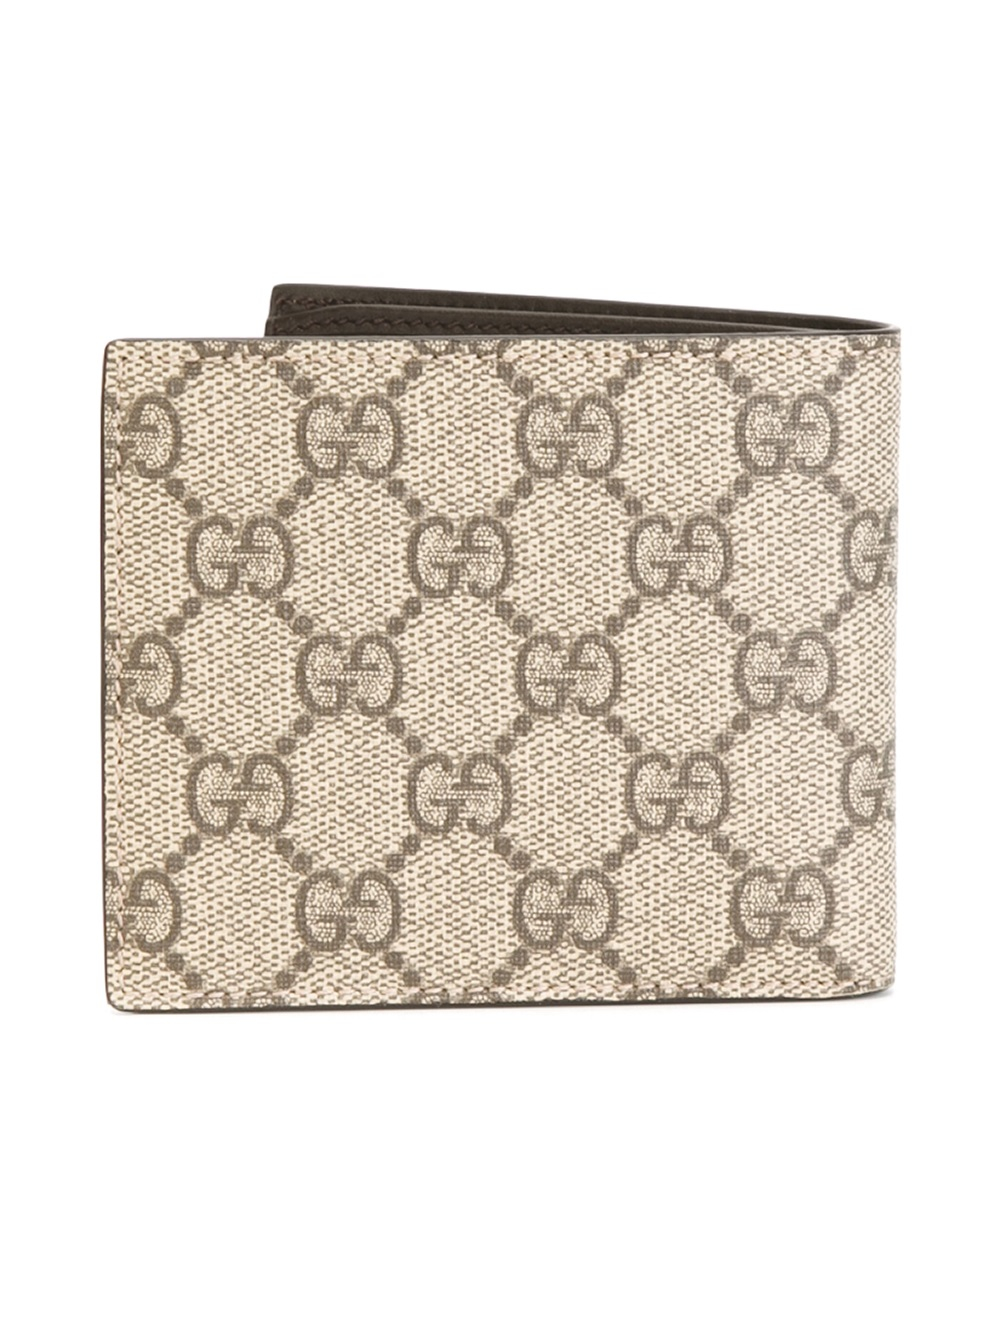 a003e2ba3bed Gucci Gg Supreme Wallet in Natural for Men - Lyst